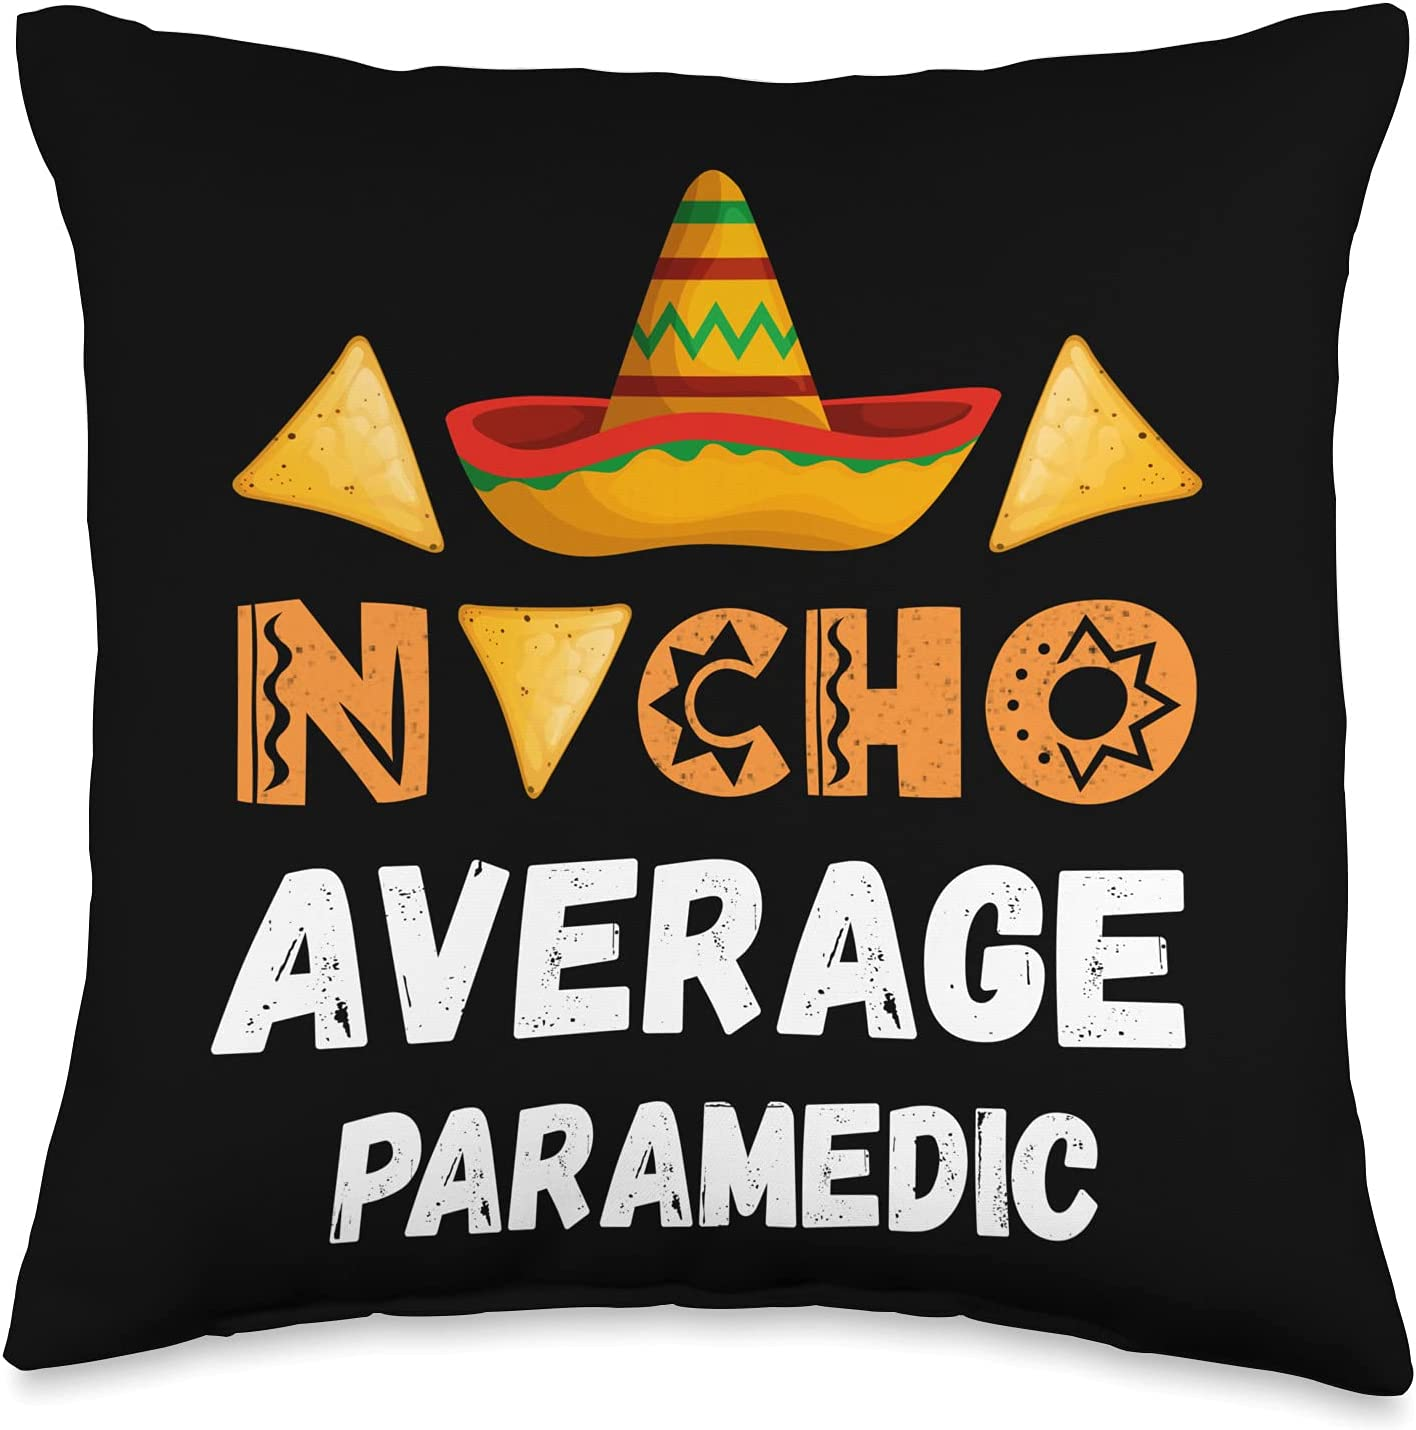 Paramedic Retirement Coworker Design Average Spring new National uniform free shipping work Cow Nacho